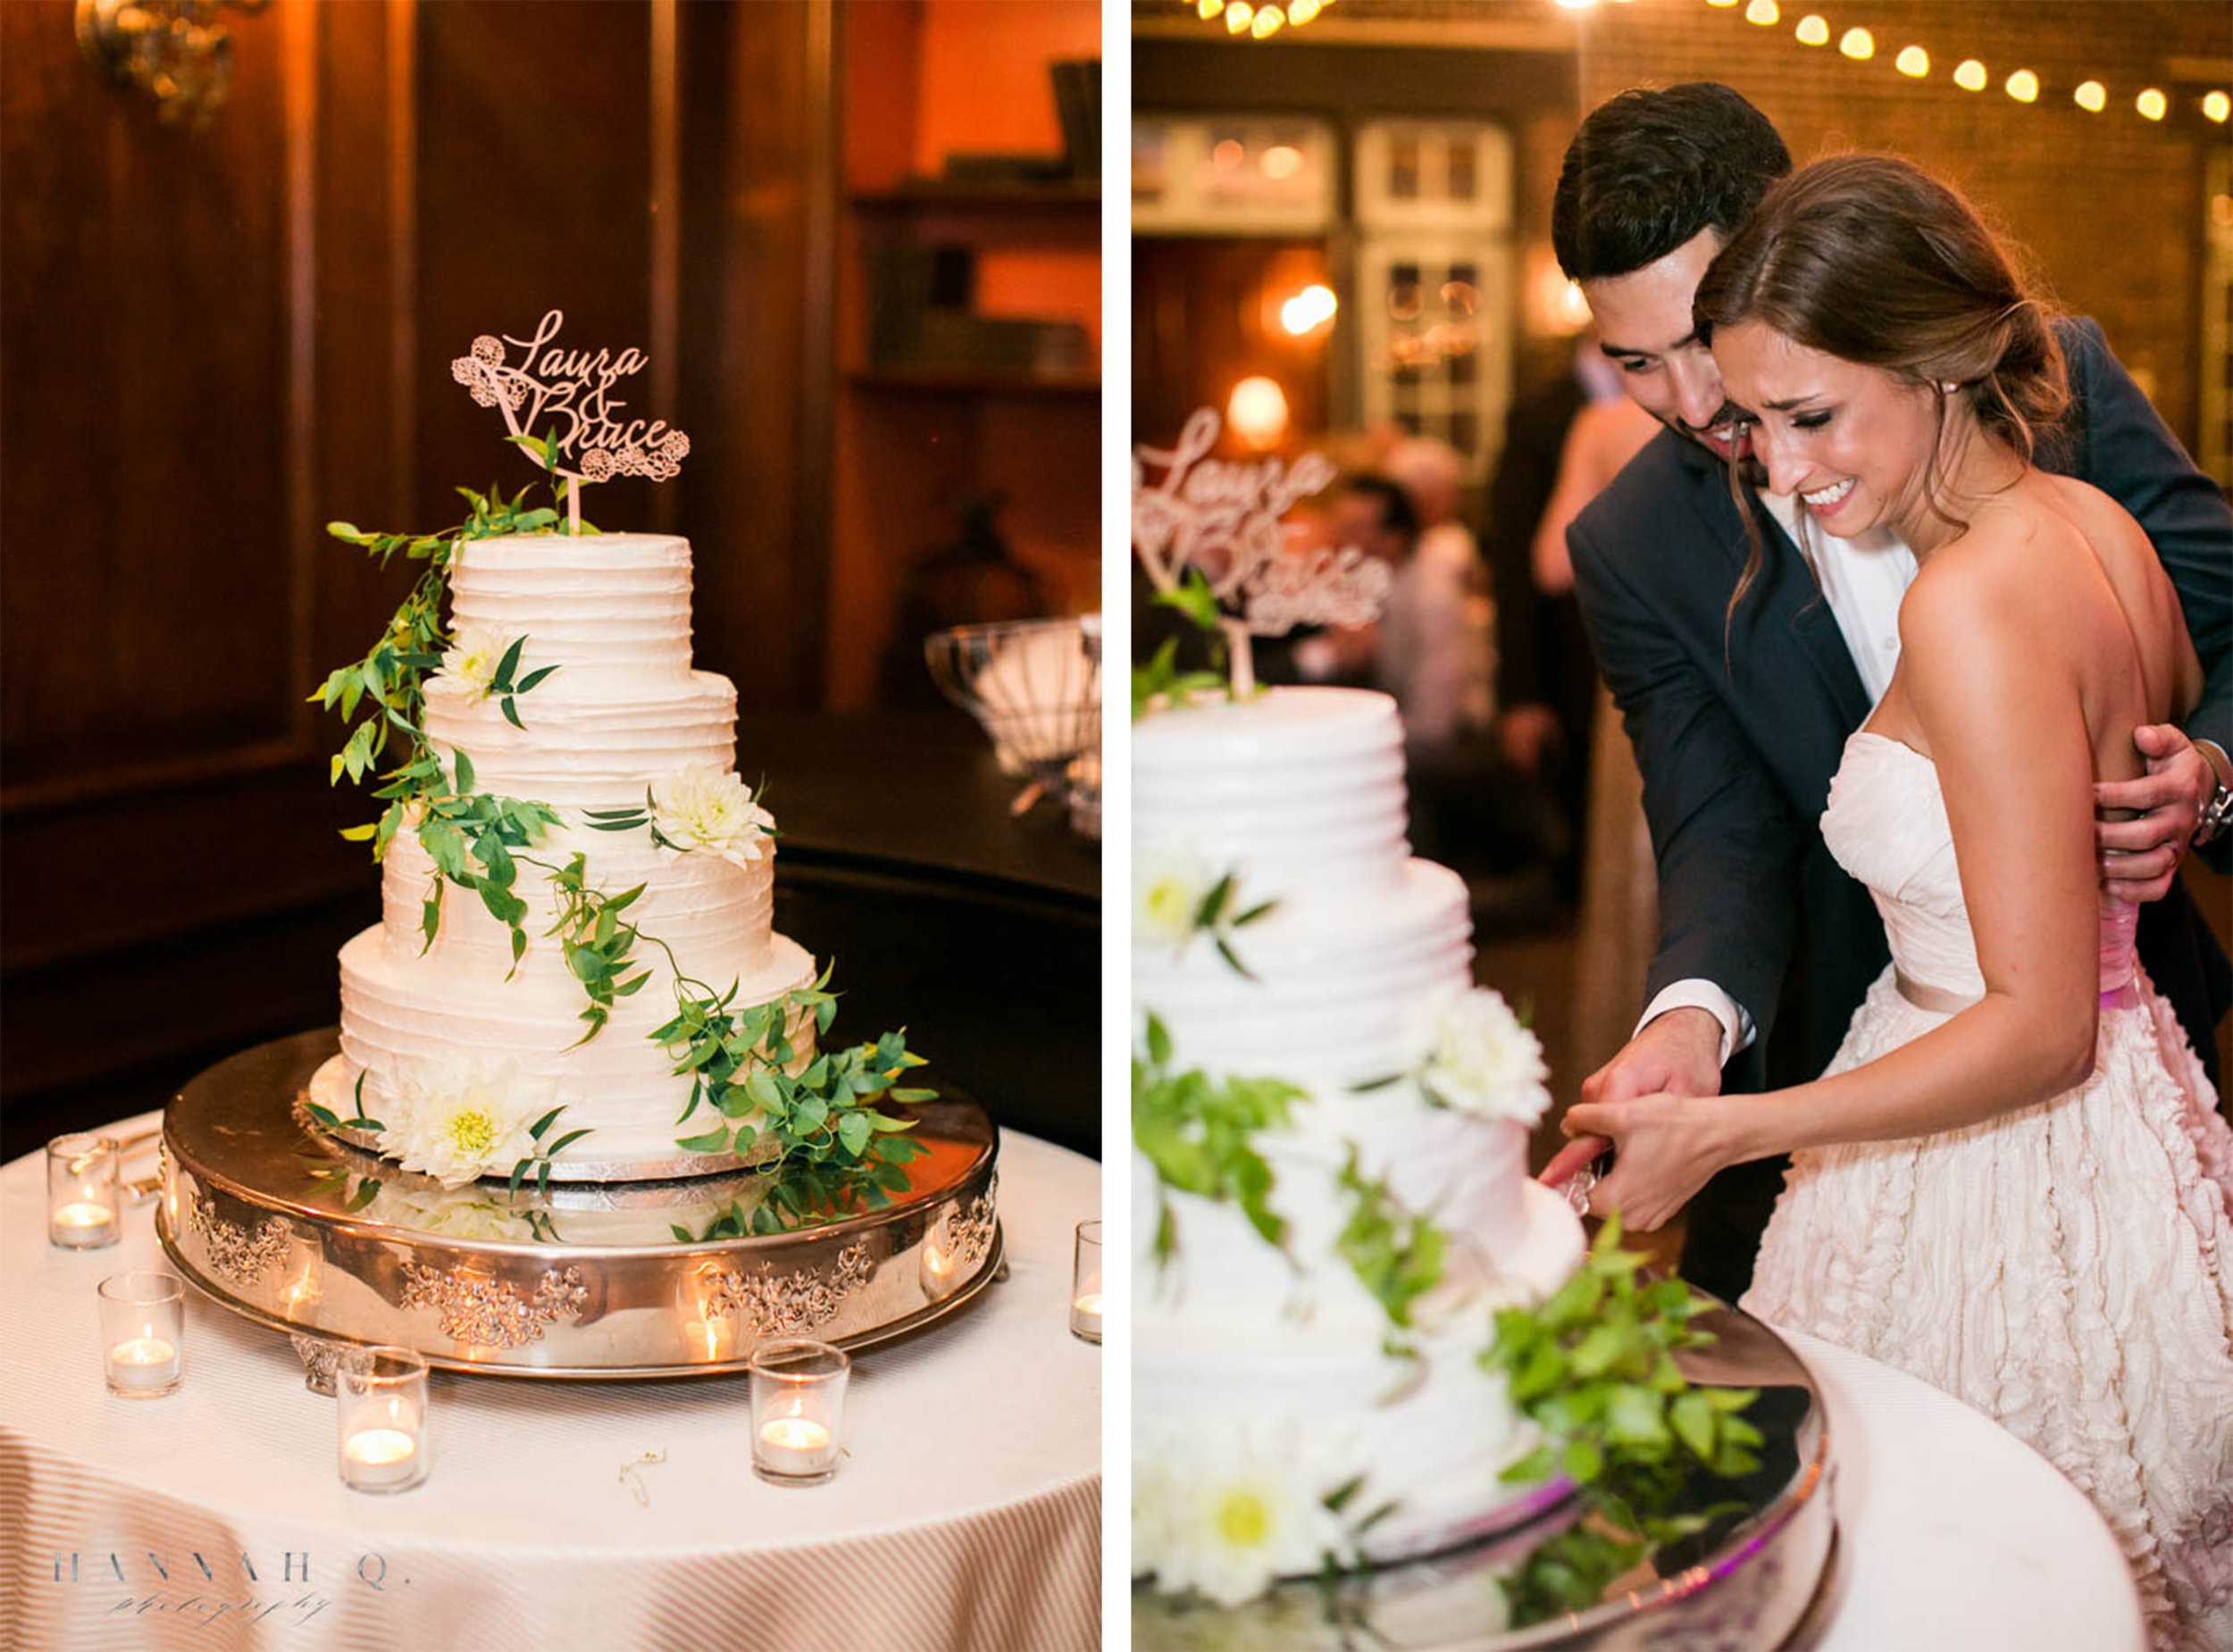 Another one of my favorite parts during the wedding is the cake cutting! It's always nice to see how vicious or kind they are to one another.